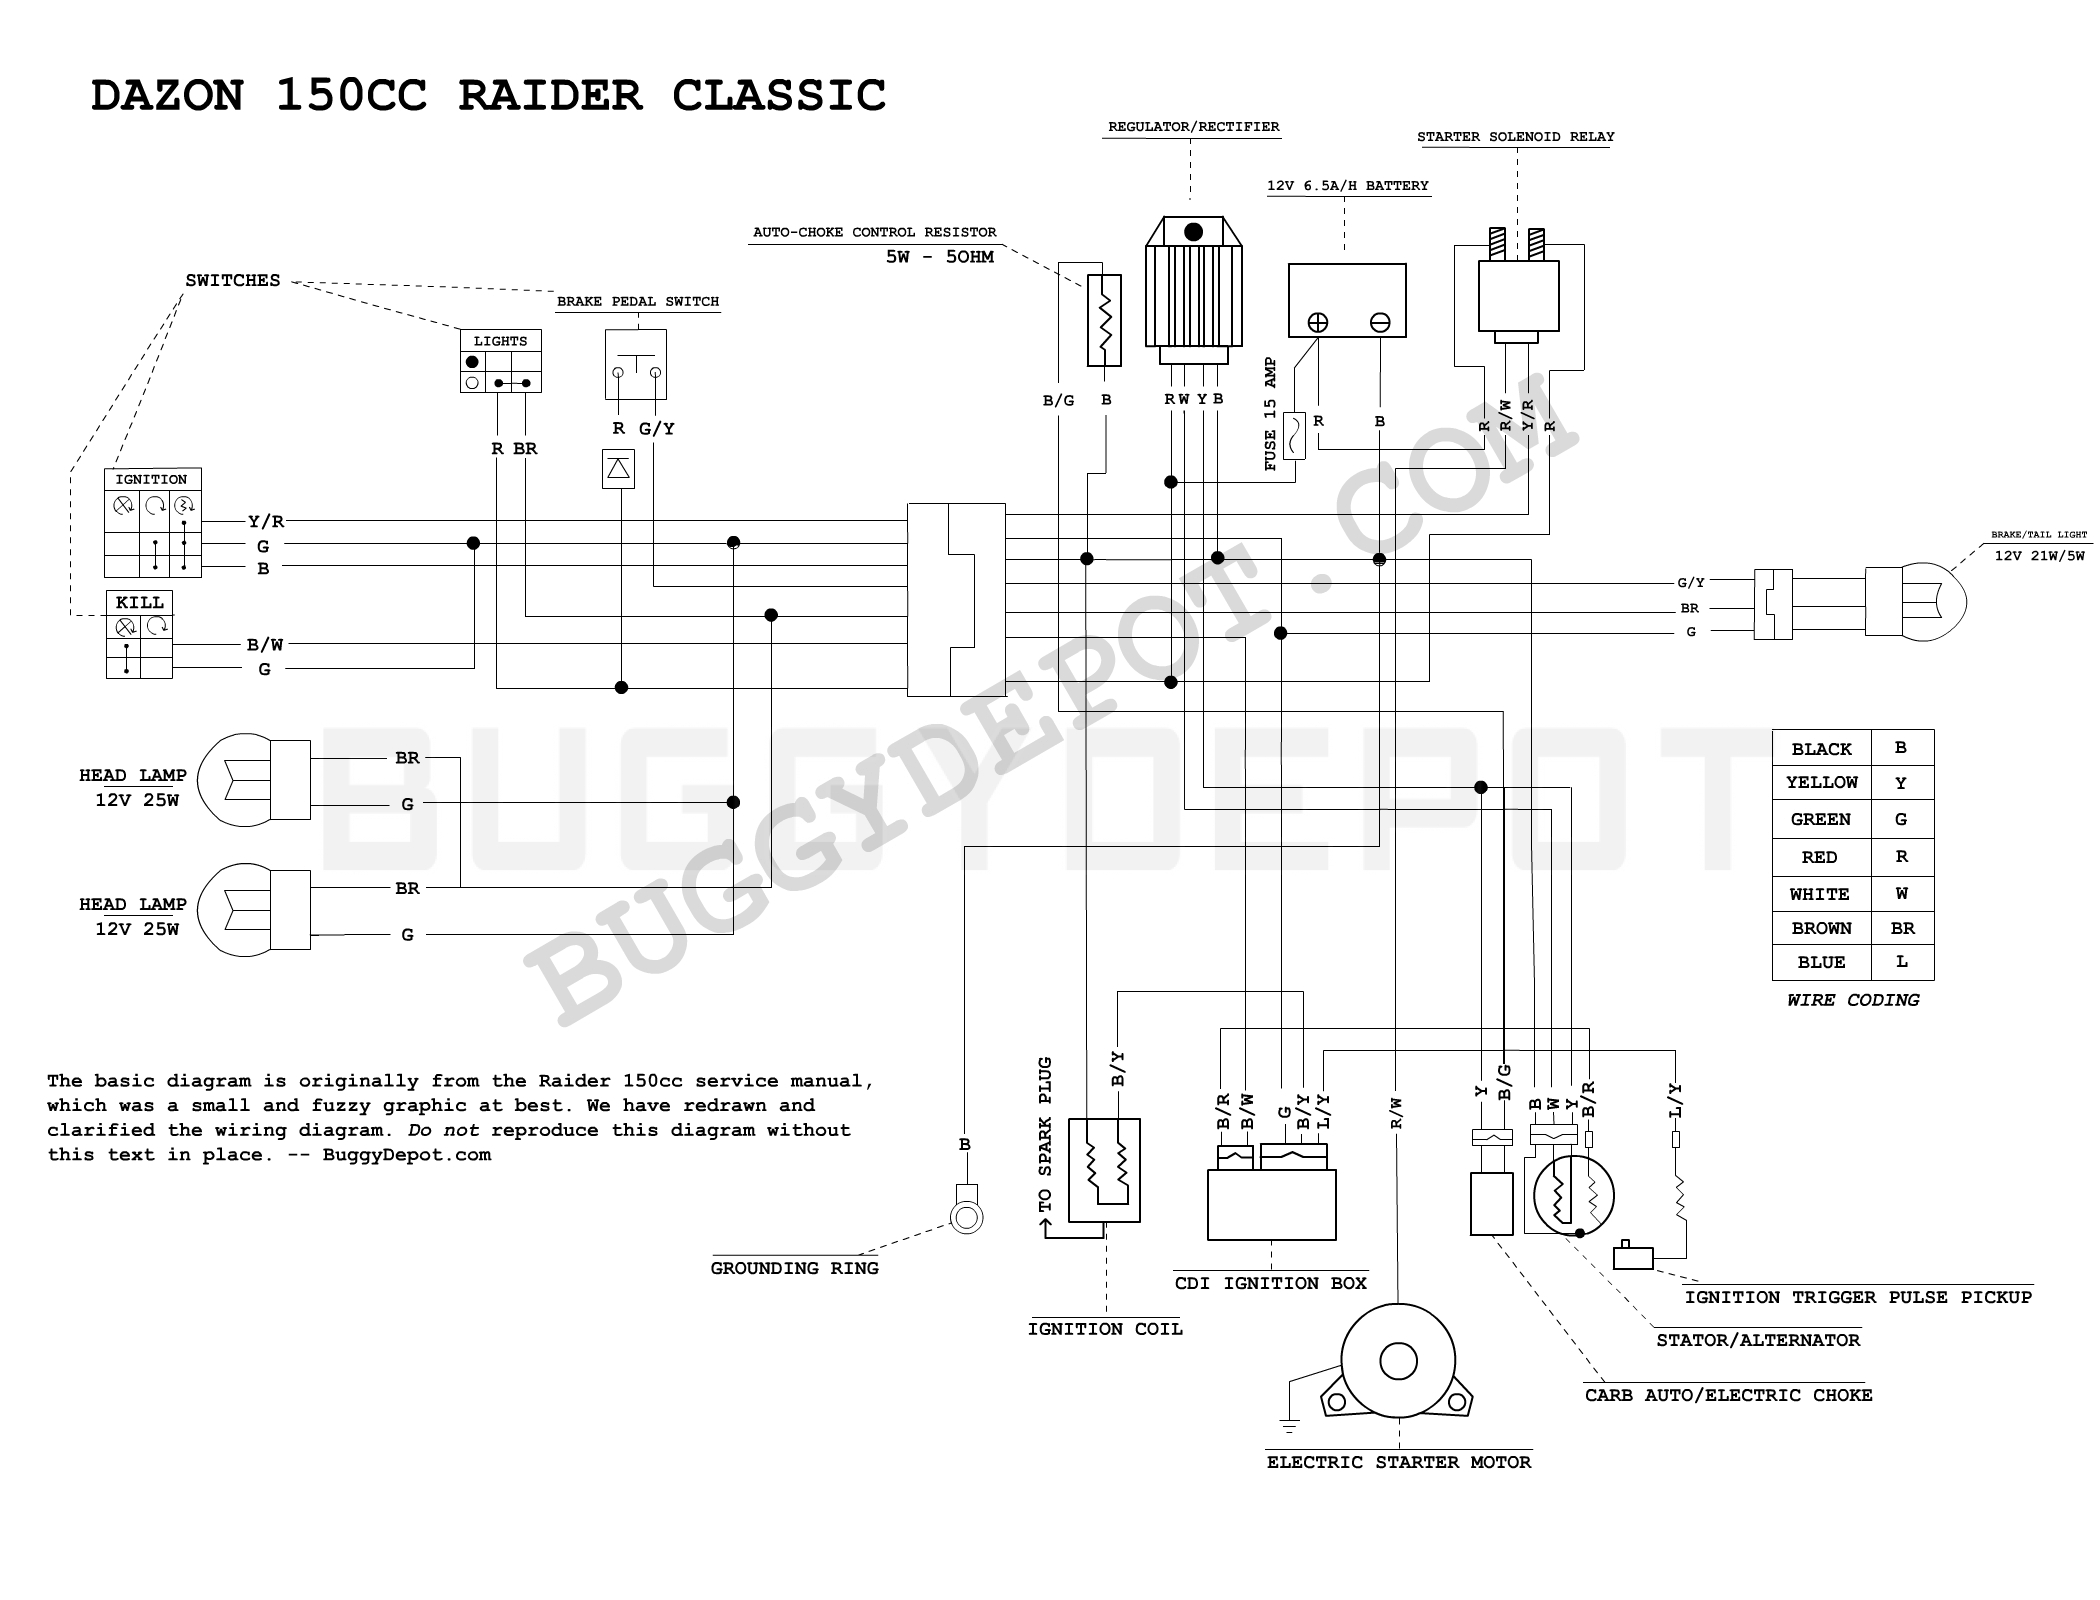 yamaha wiring diagram 50cc atv with Carbide 150cc Go Kart Wiring Diagram on 215268823 TaoTao Mini And Youth ATV Wiring Schematic as well Wiring Diagram For Gy6 150cc Scooter likewise Repair And Service Manuals together with 1999 Chevy Silverado Power Steering System moreover Coolster 150cc Atv Wiring Diagram.